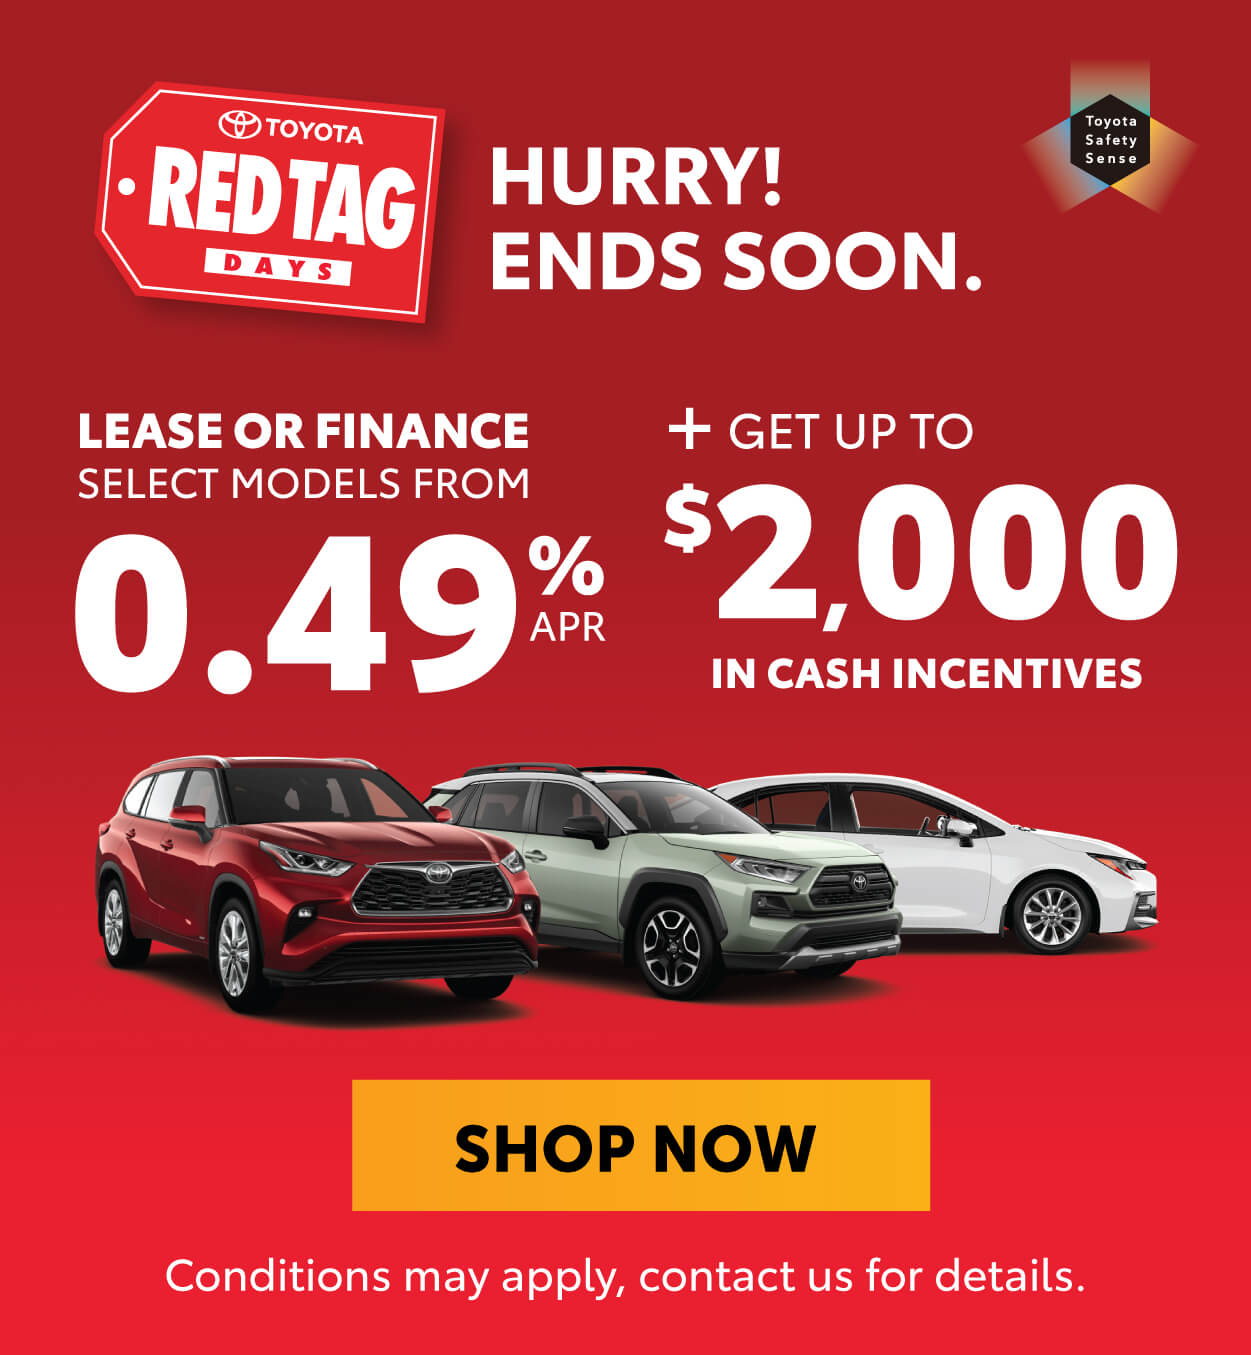 Goderich Toyota Red Tag Days offers